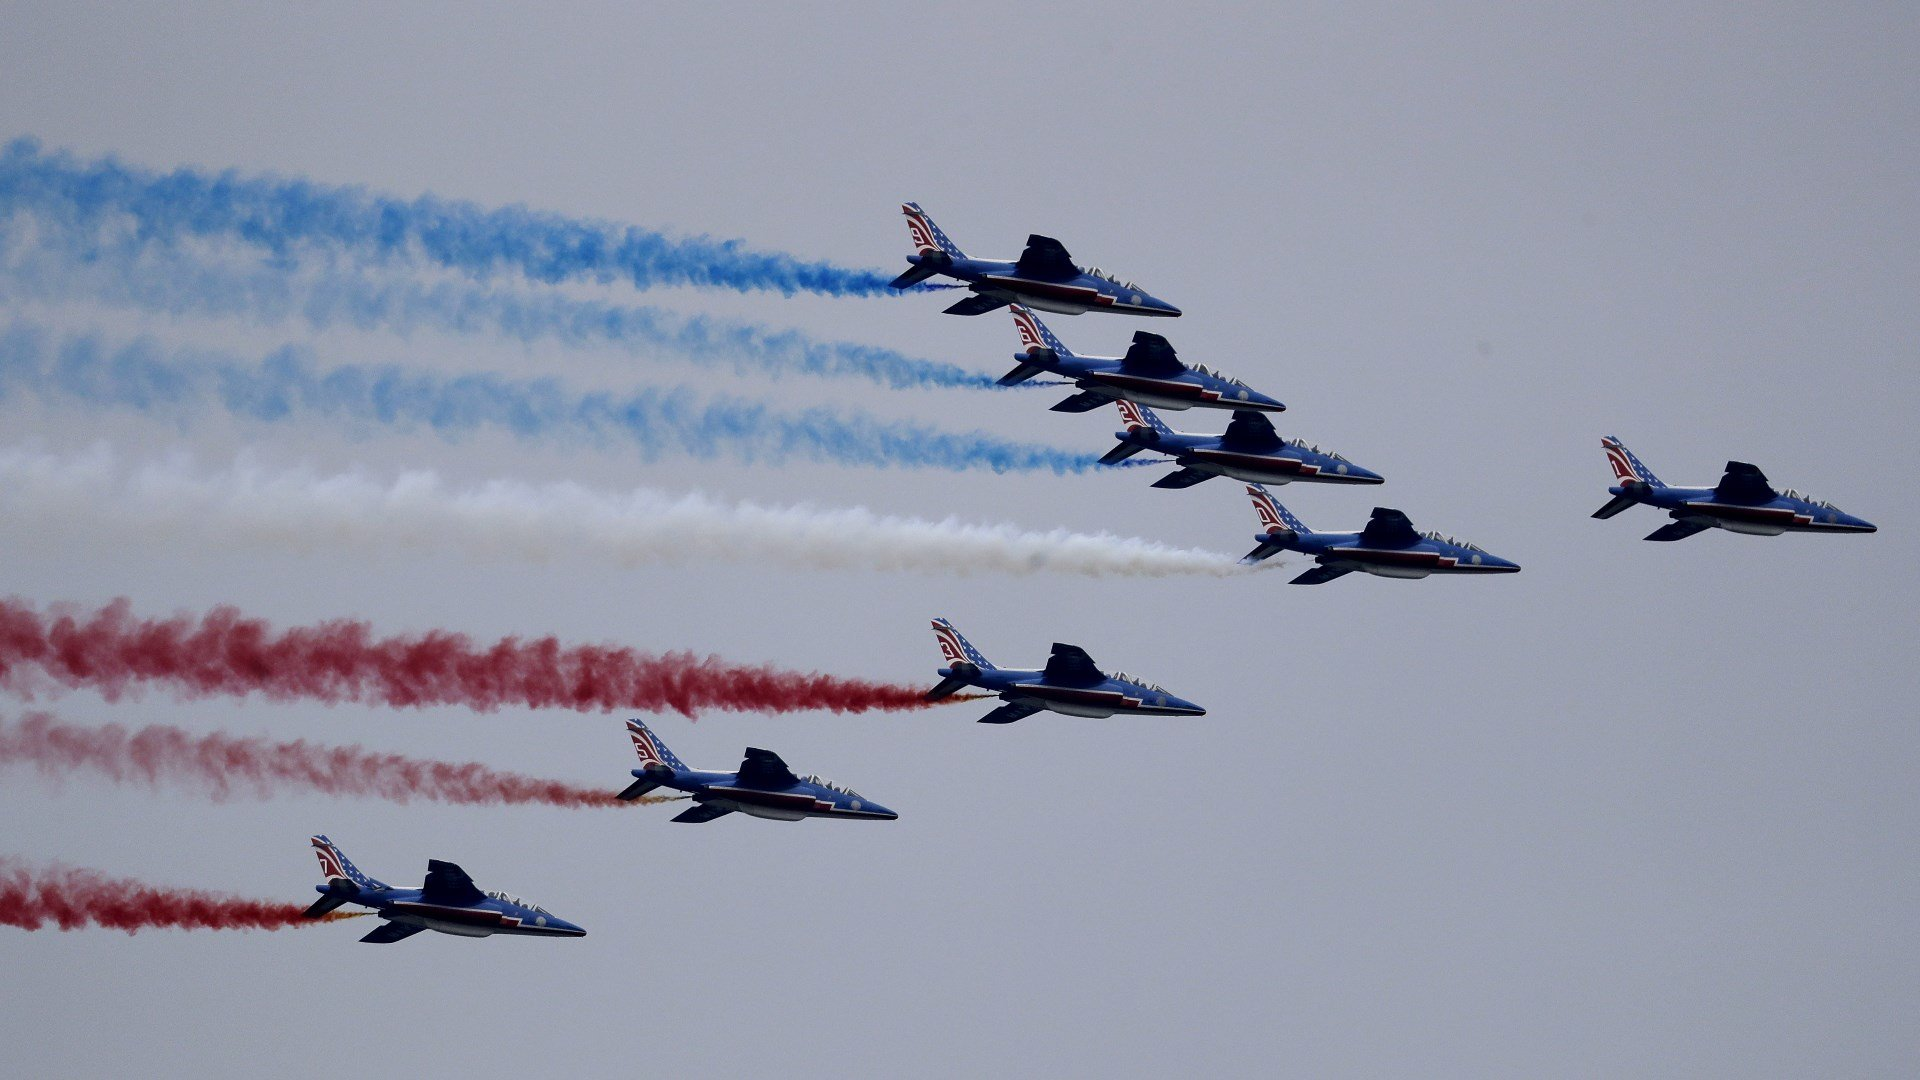 The French Air Force's Patrouille de France, led by an A400 Airbus support plane, performs a flyover the New York City skyline, Saturday, March 25, 2017, seen from Jersey City, N.J. The eight Alpha Jet formation is to commemorate the 100th anniversary of